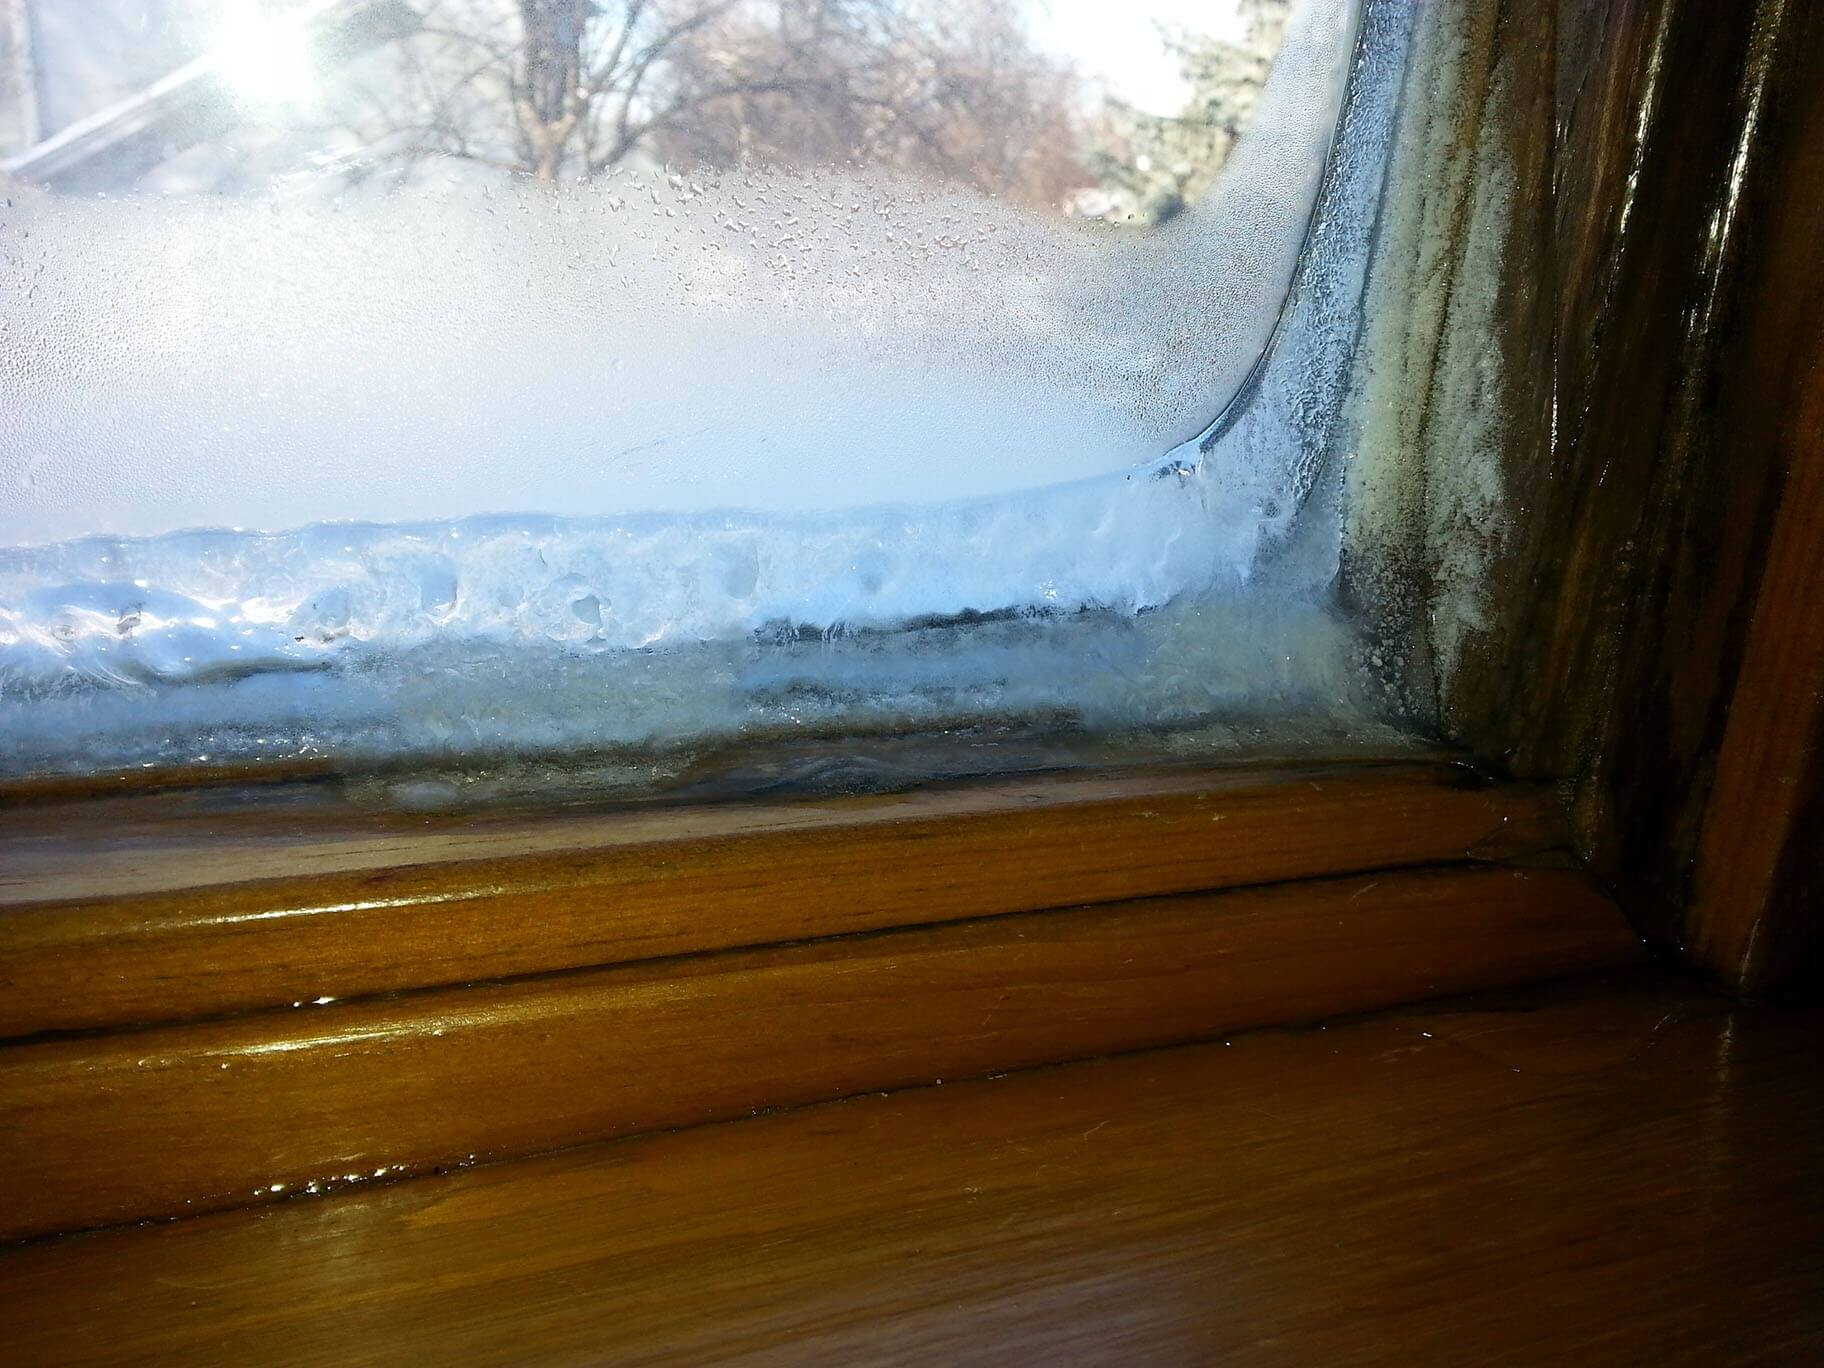 How to control window condensation - StarTribune com